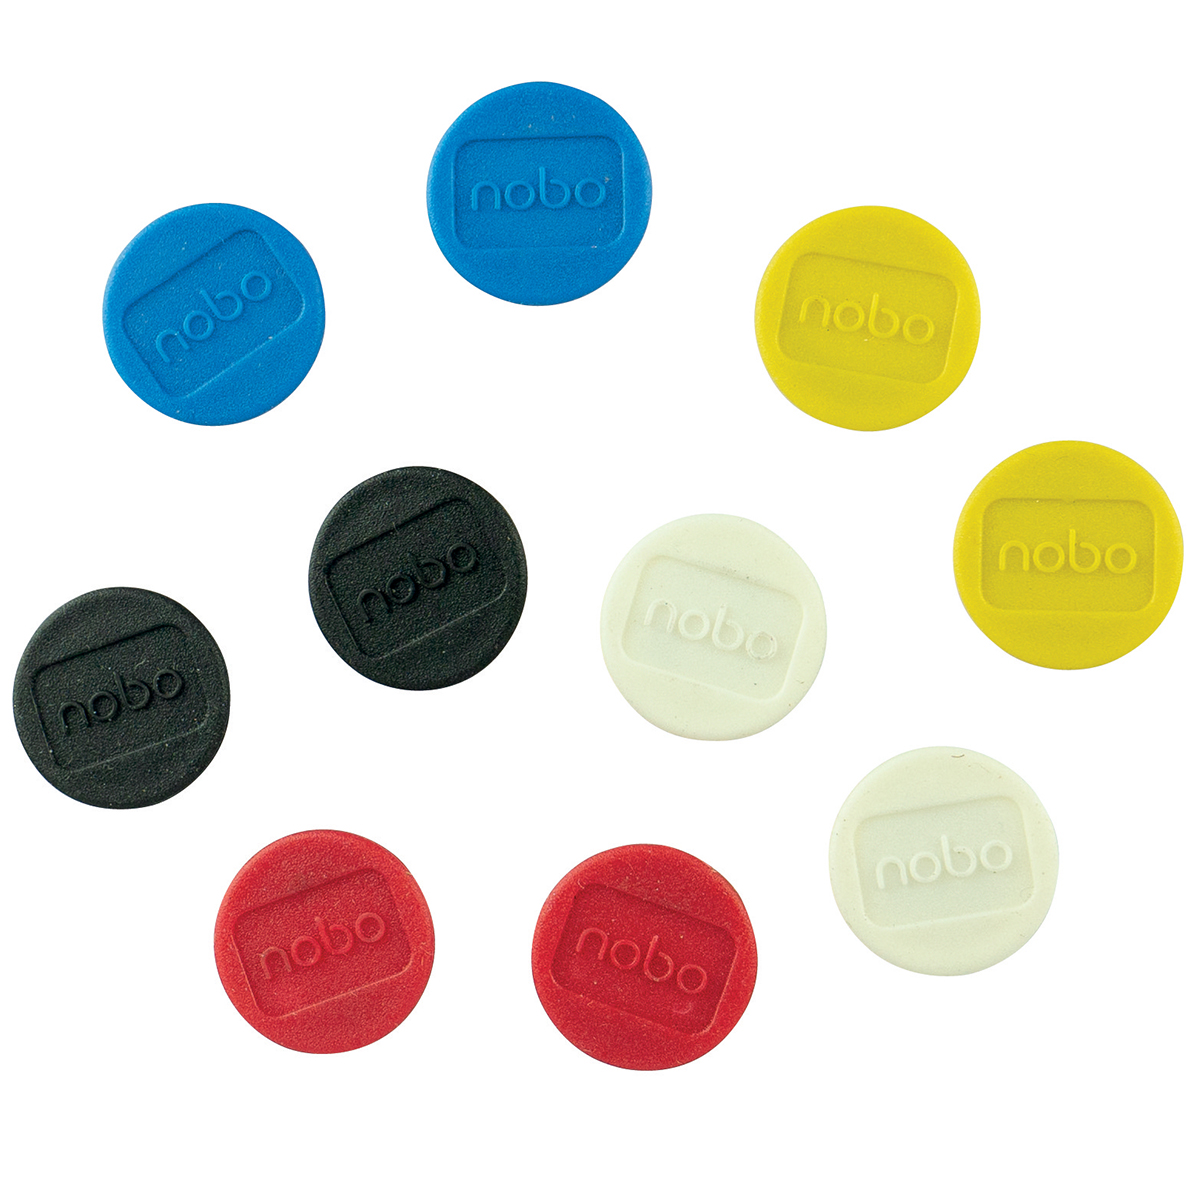 Nobo 1901016 Magnetic 20mm Assorted Whiteboard Magnets Pack of 10